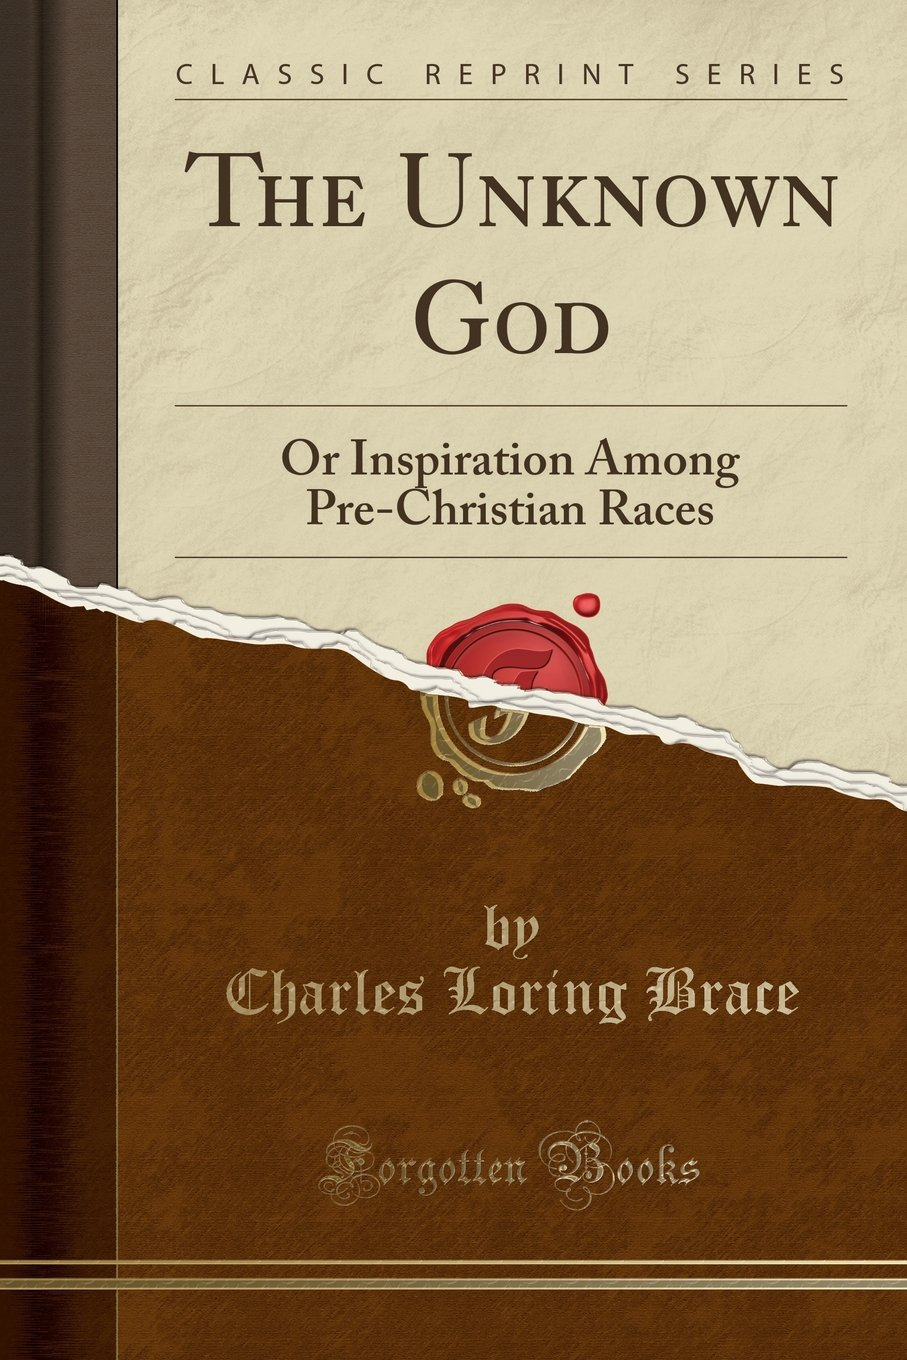 The Unknown God: Or Inspiration Among Pre-Christian Races (Classic Reprint) pdf